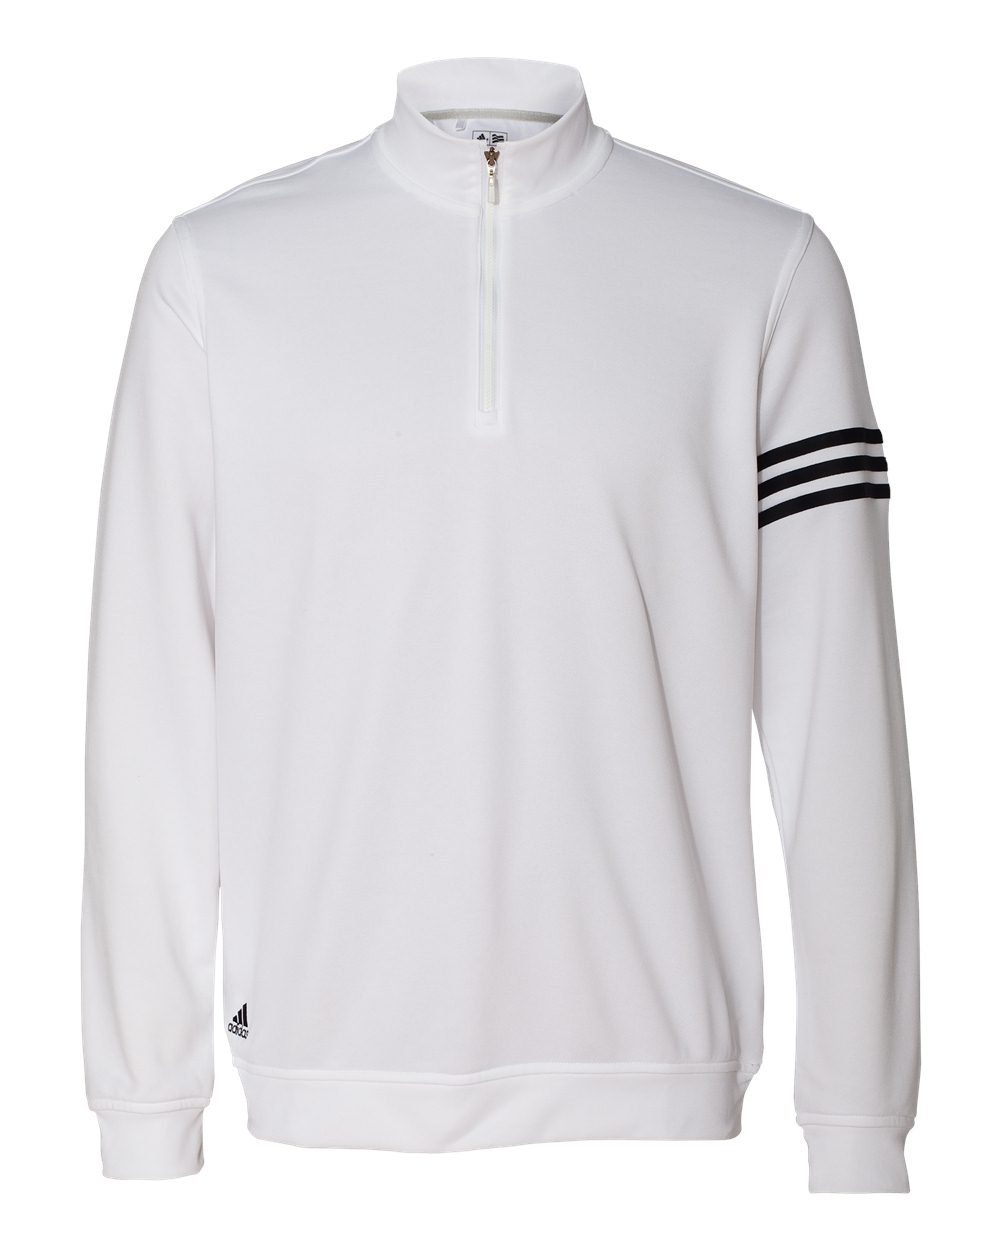 adidas quarter zip. previous; next adidas quarter zip